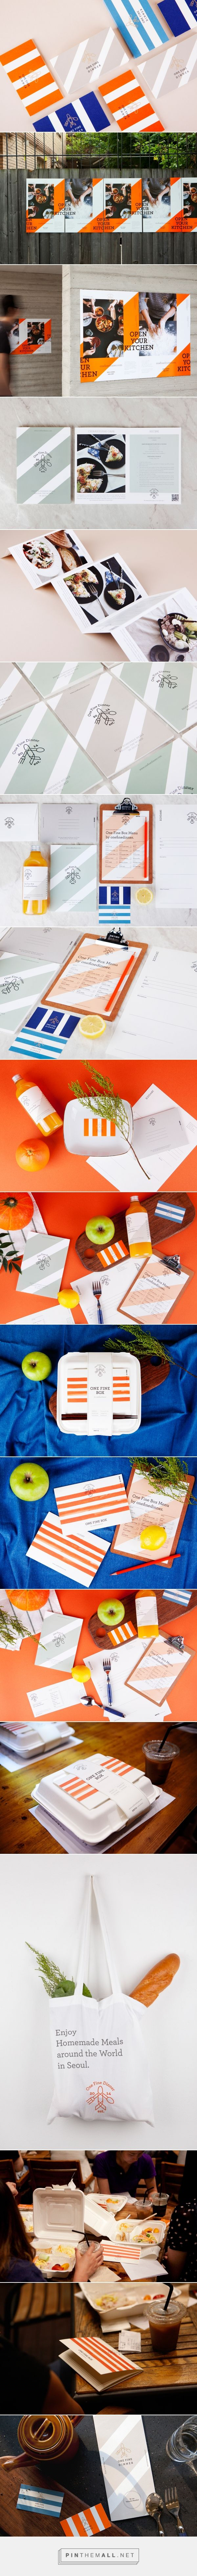 OneFineDinner Branding by Charry Jeon, ContentFormConte, KIWOONG HONG